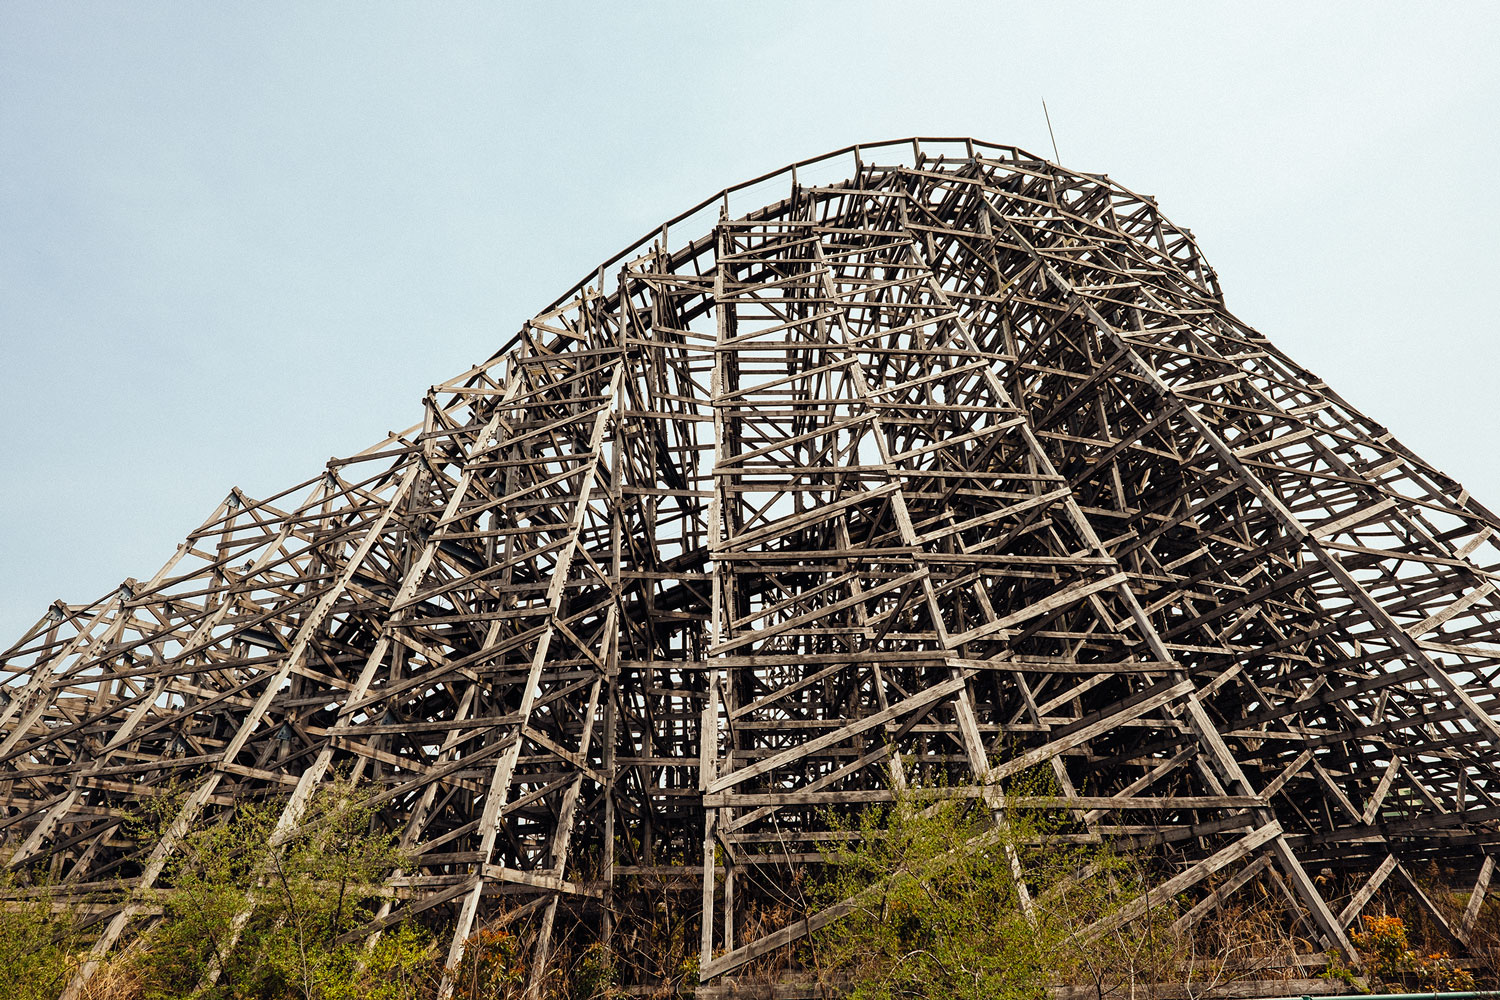 A... wait, WHAT?! A wooden rollercoaster?!